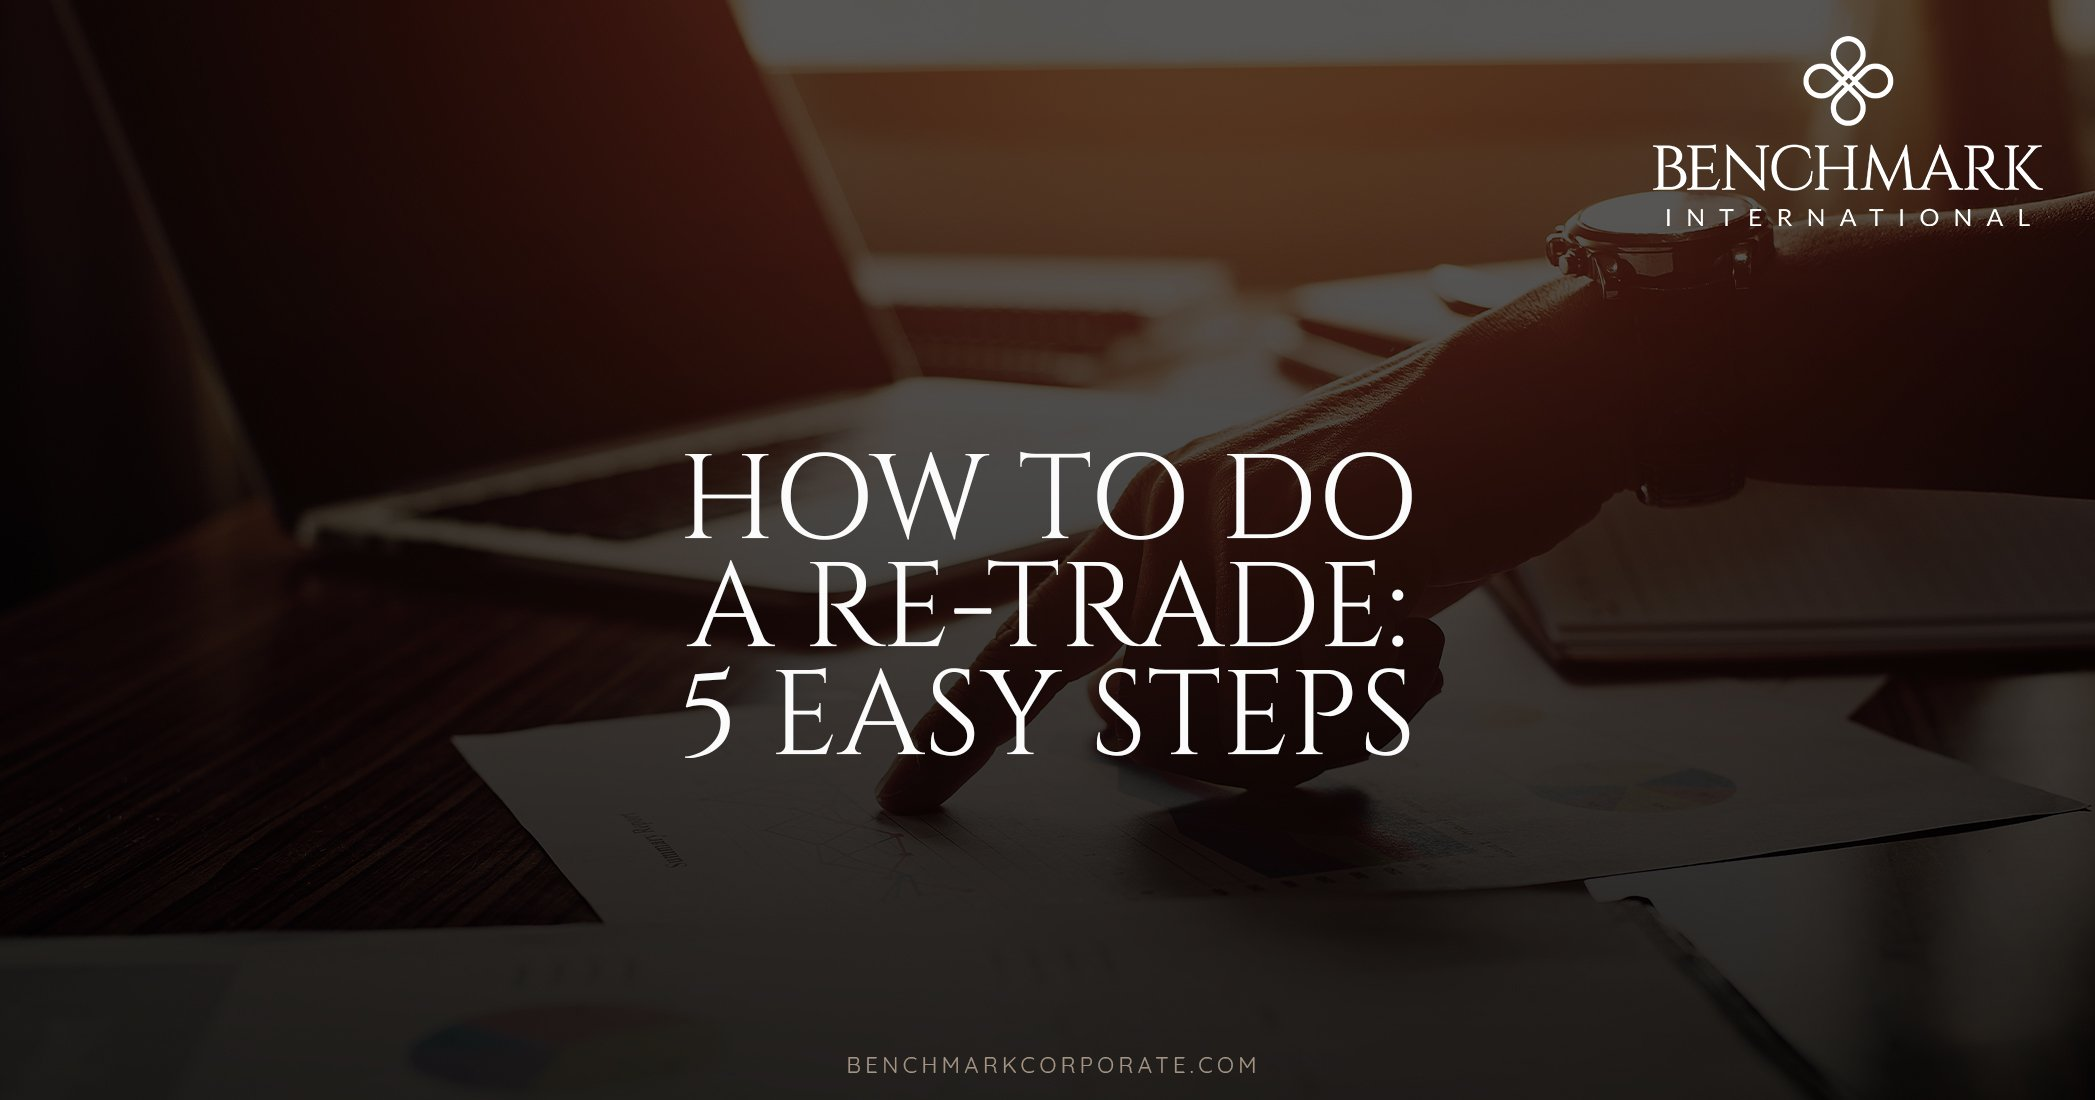 How to Do a Re-trade: 5 Easy Steps